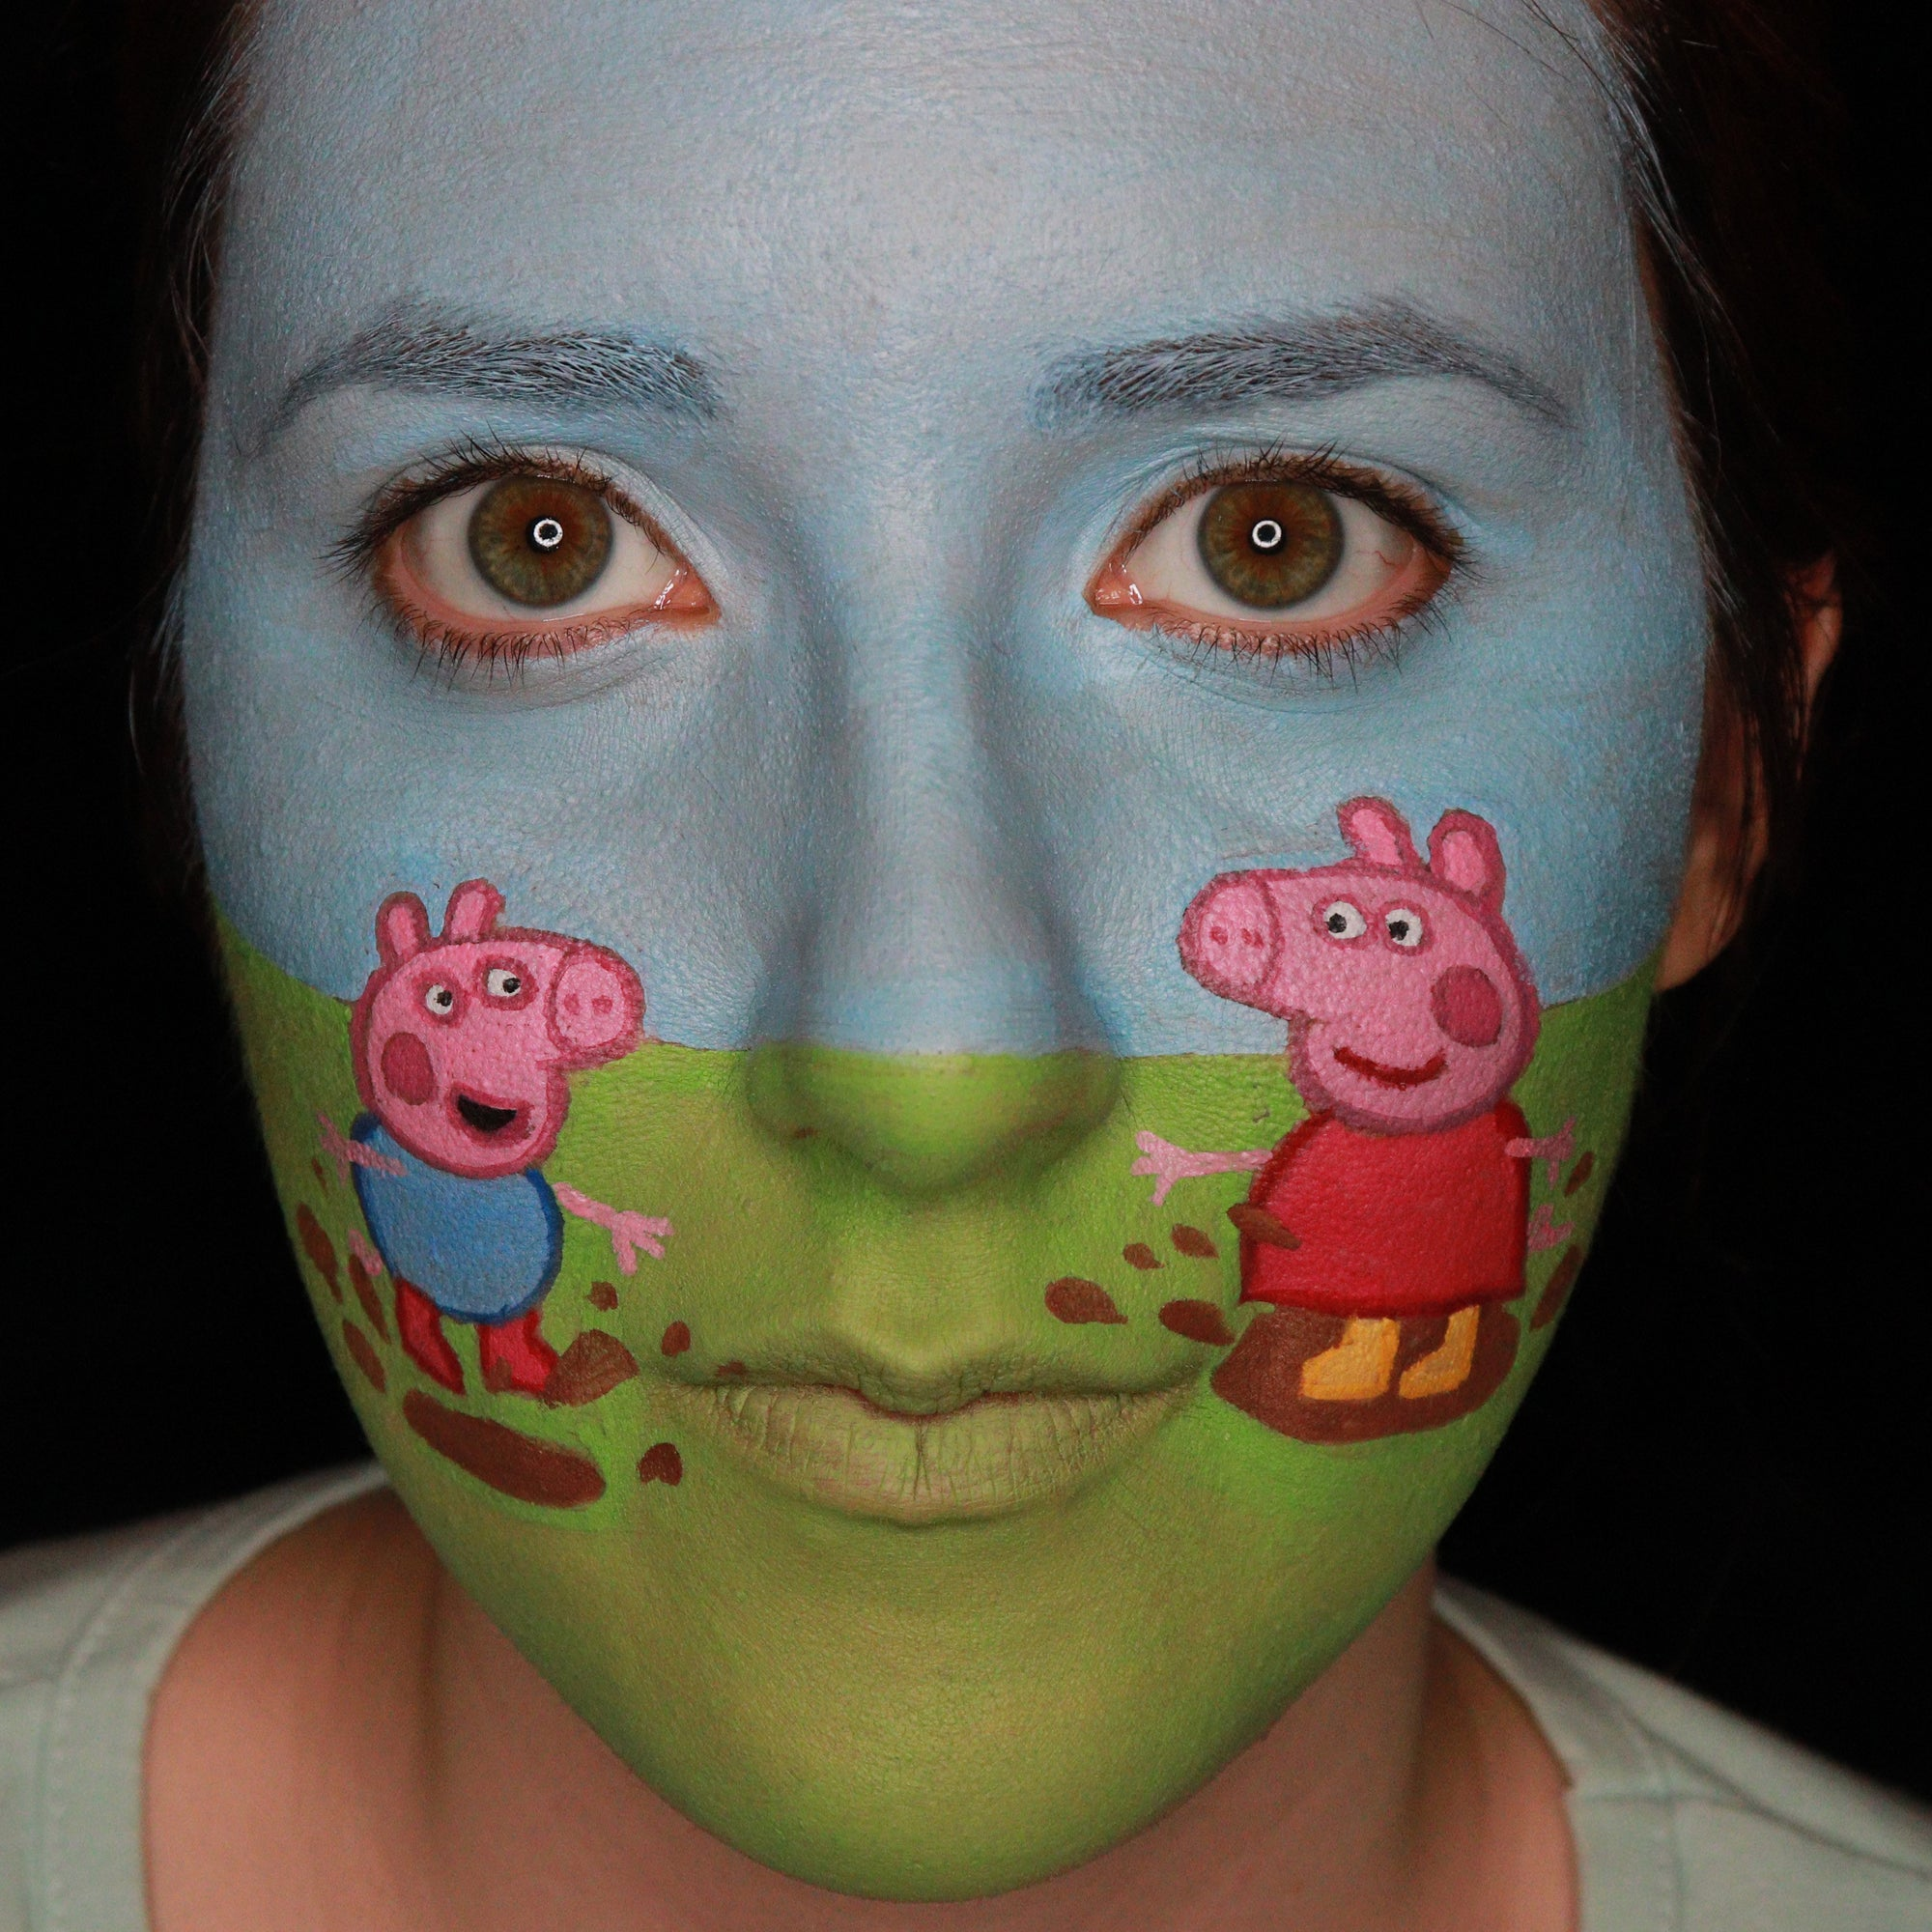 Peppa Pig Face Paint Design by Ana Cedoviste